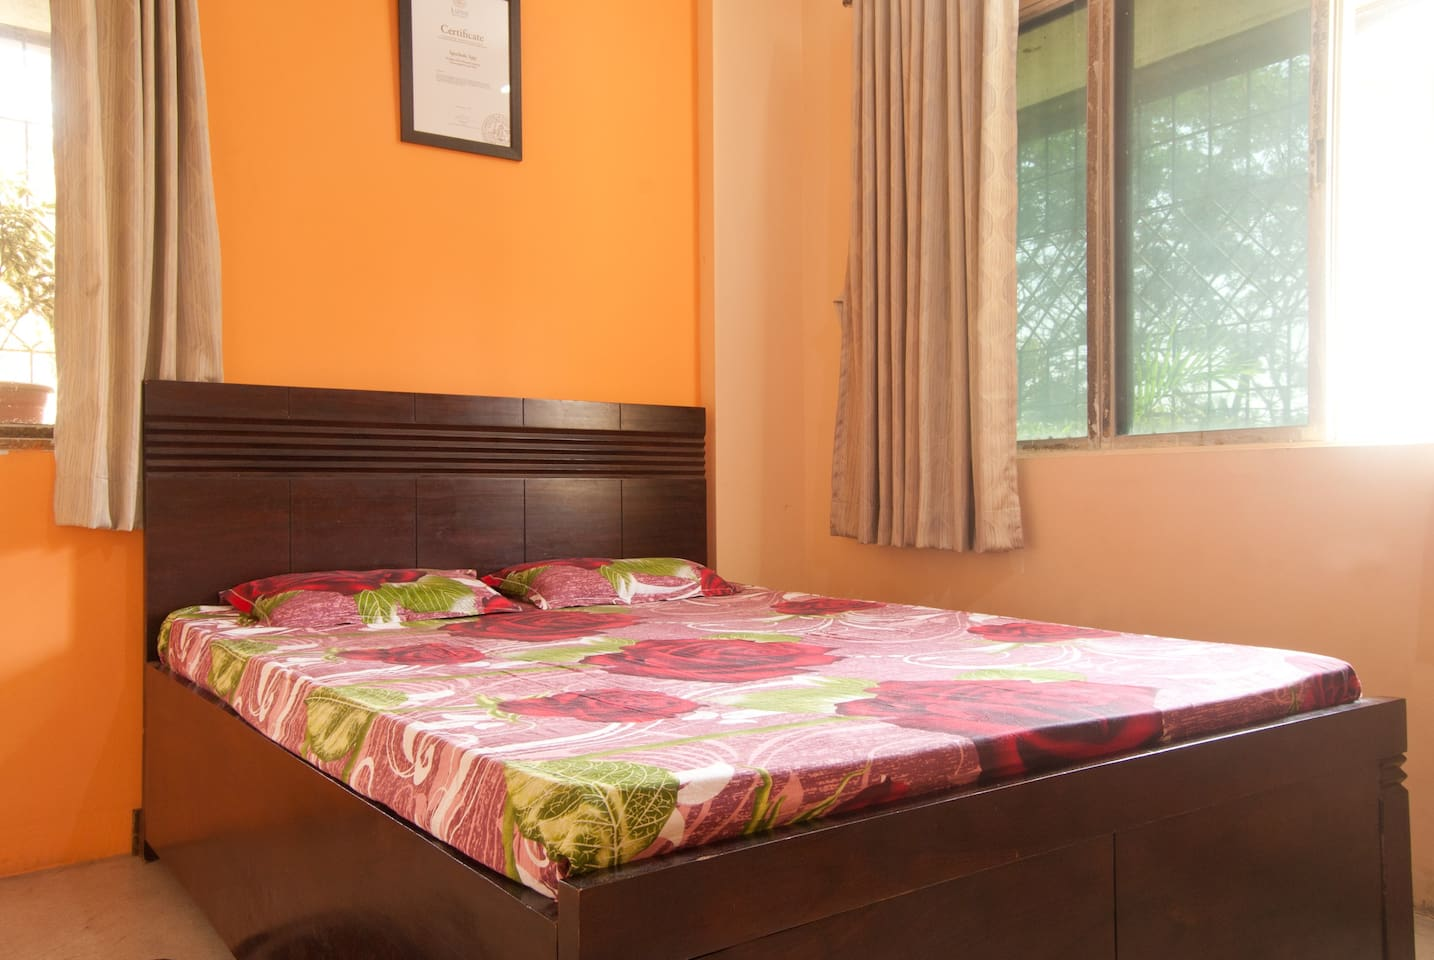 Your Bedroom: Married and unmarried both are welcome. Clean, cool, calm, and safe for solo women travellers too.